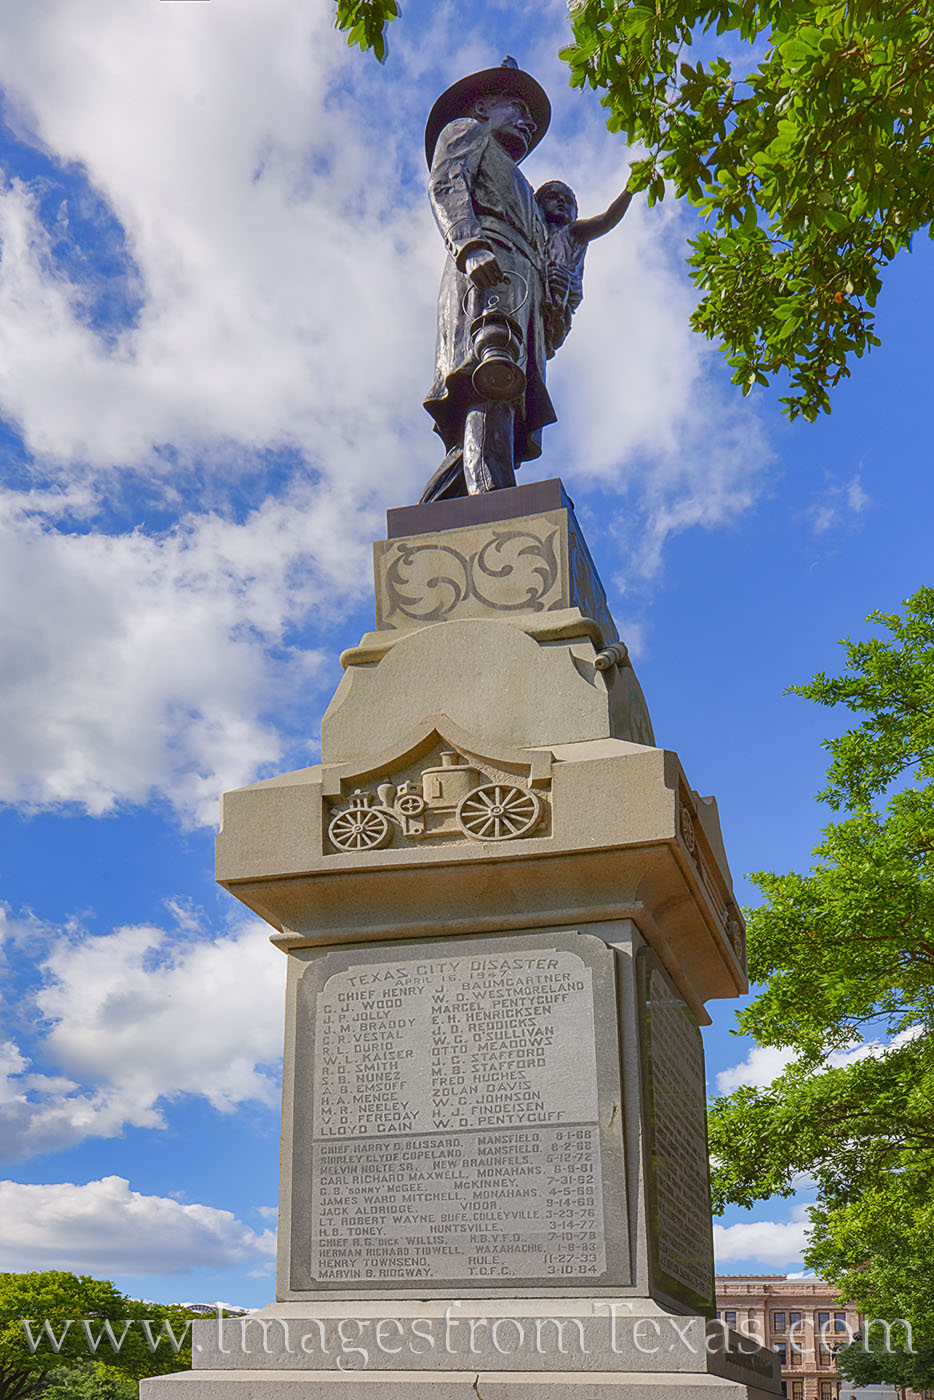 texas state capitol, monuments, volunteer fireman, capitol monuments, austin texas, photo